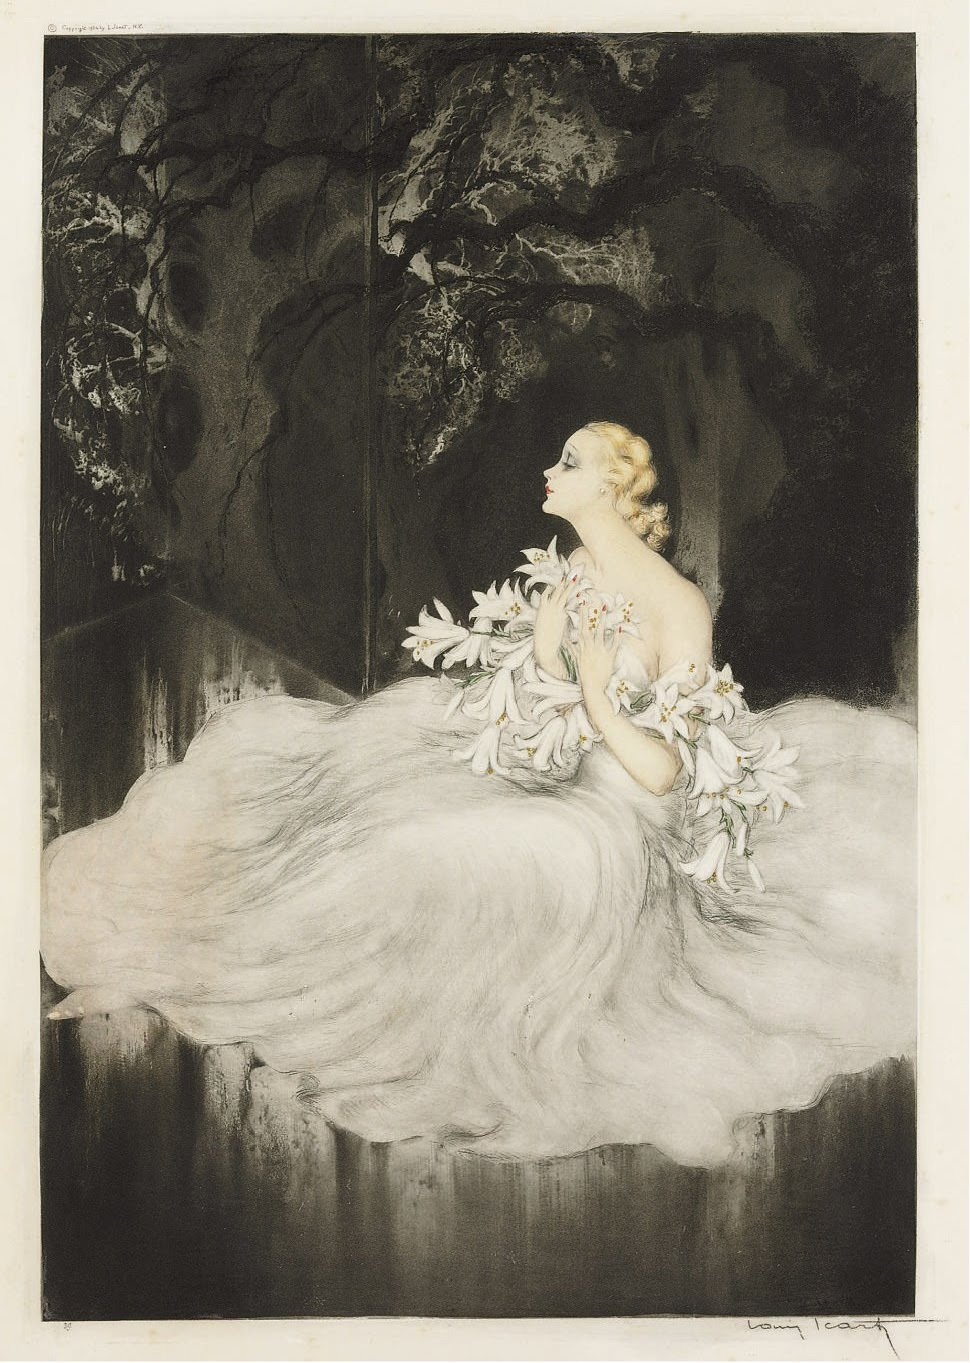 O To Ww Bing Comsquare Root 123: MATIN LUMINEUX: Louis ICART